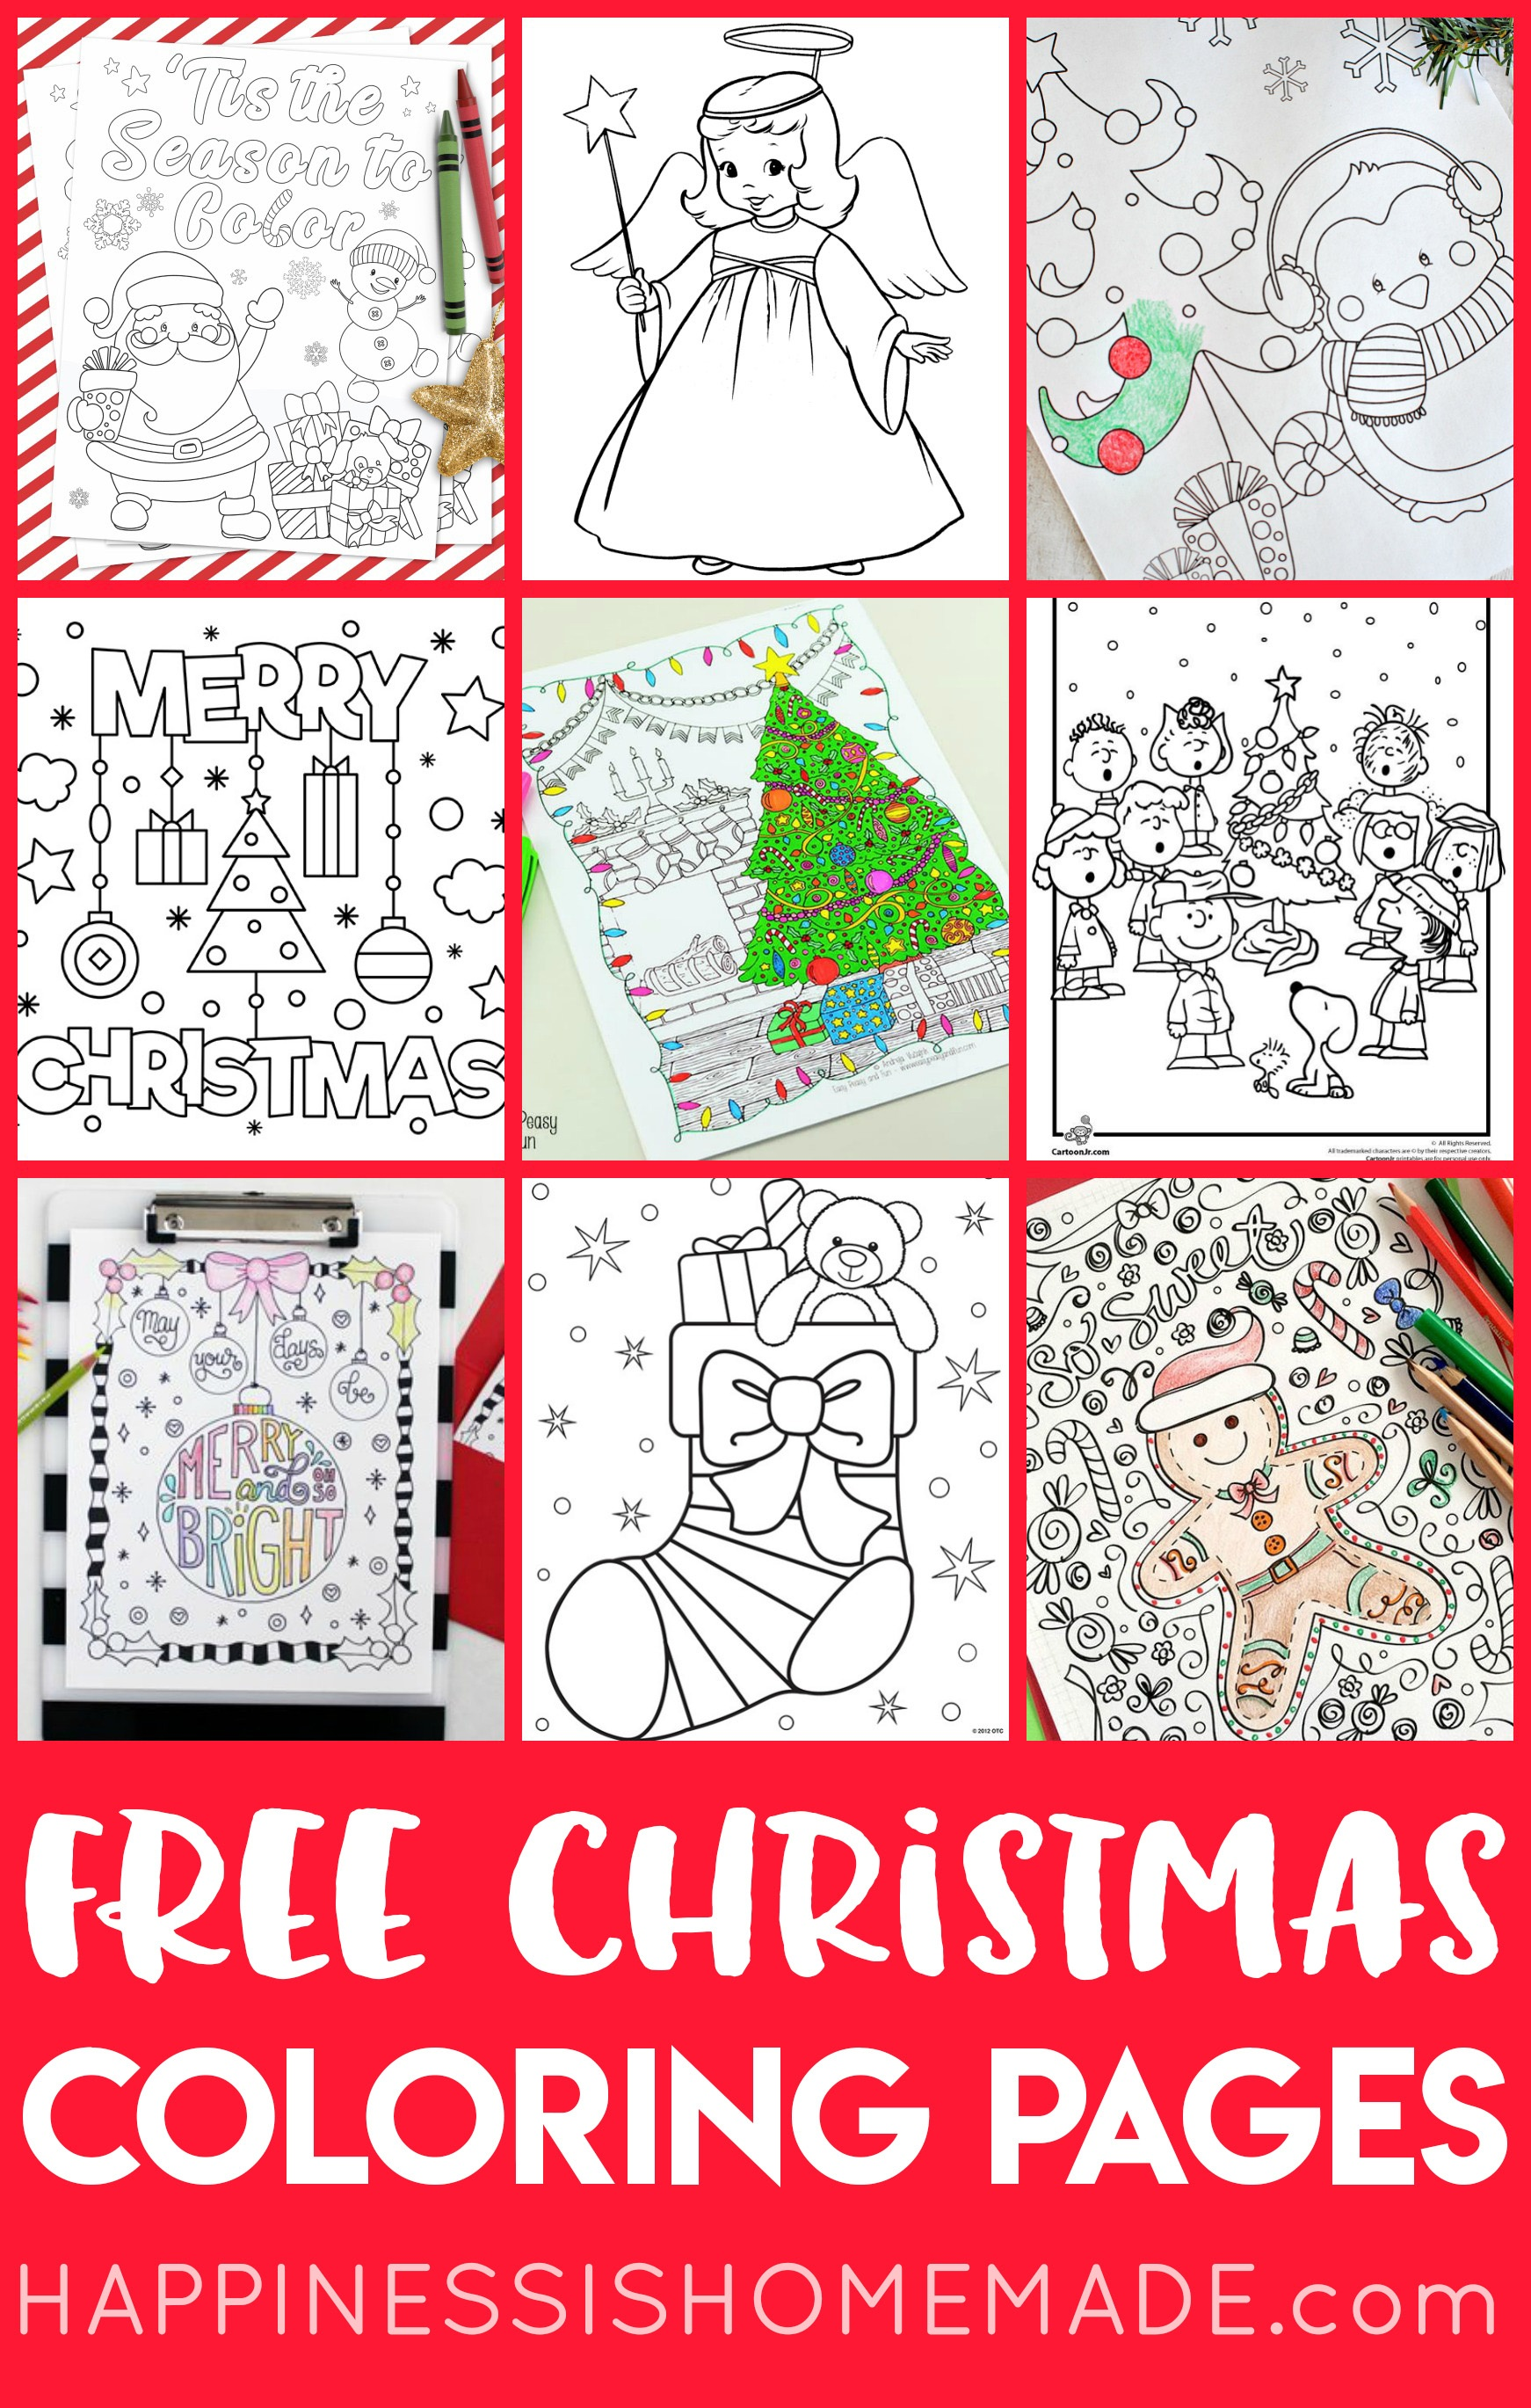 Free Christmas Coloring Pages For Adults And Kids - Happiness Is - Free Printable Christmas Coloring Sheets